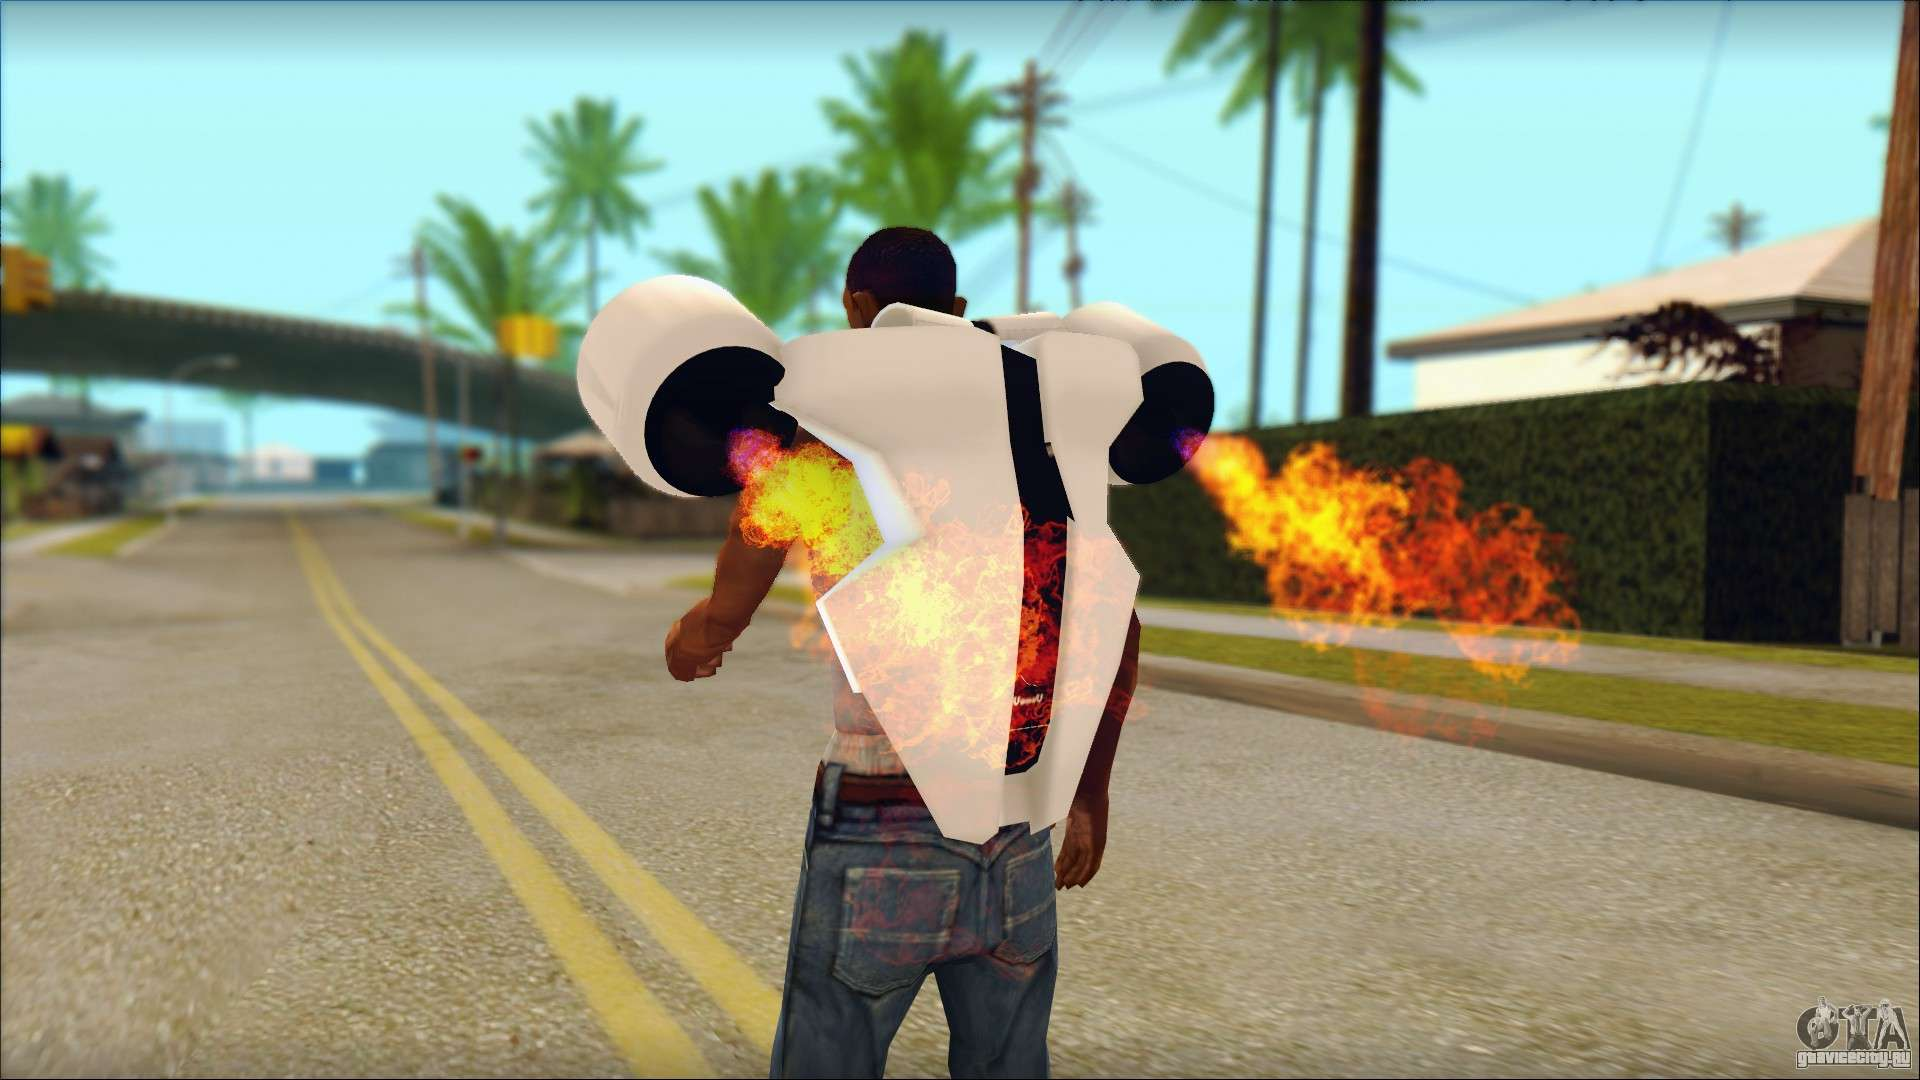 Gta san andreas sikiеџ modu hentia streaming